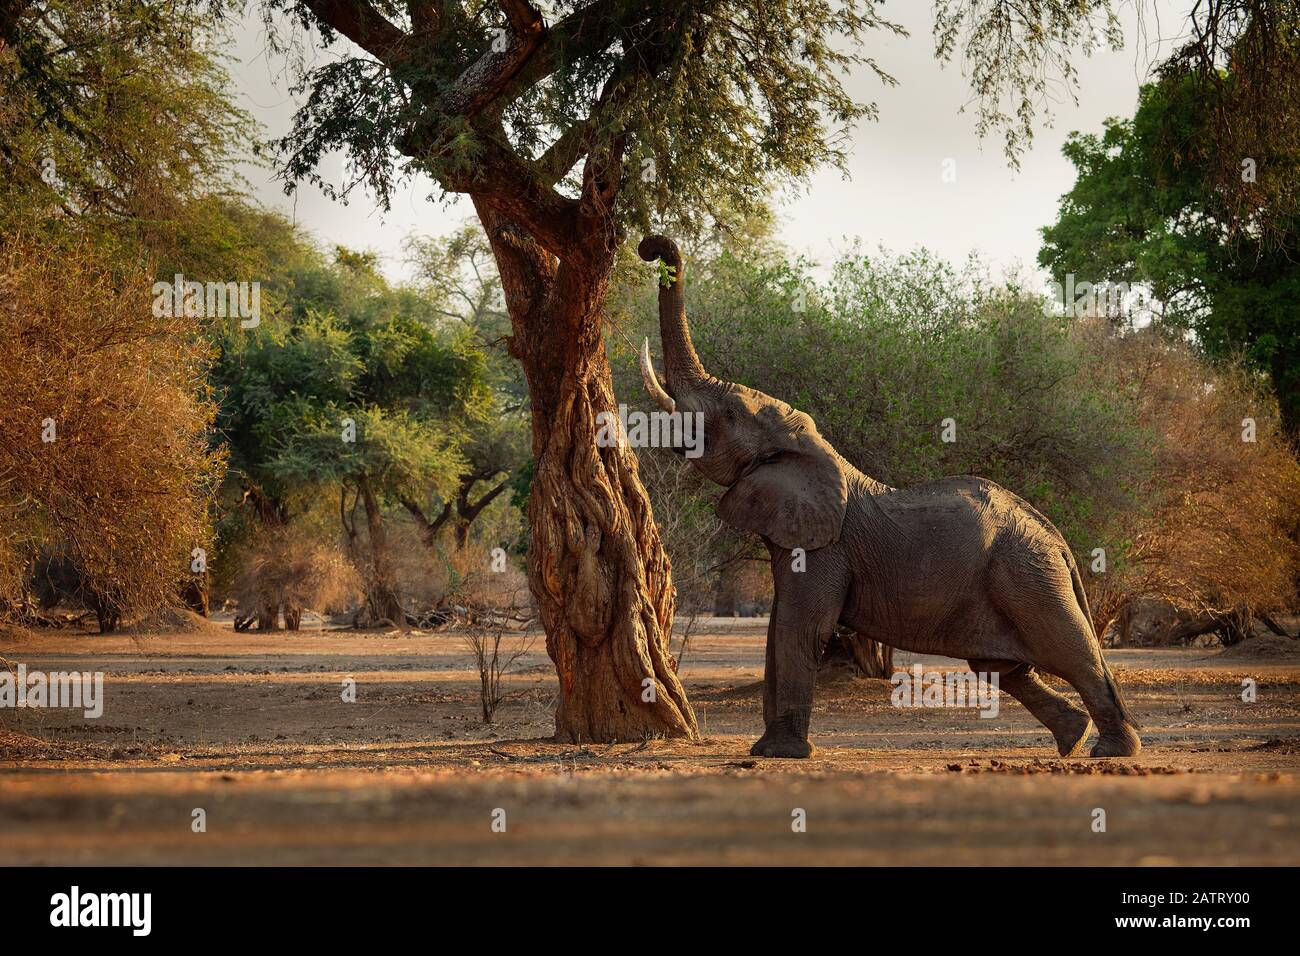 African Bush Elephant - Loxodonta africana in Mana Pools National Park in Zimbabwe, standing in the green forest and eating or looking for leaves. Stock Photo